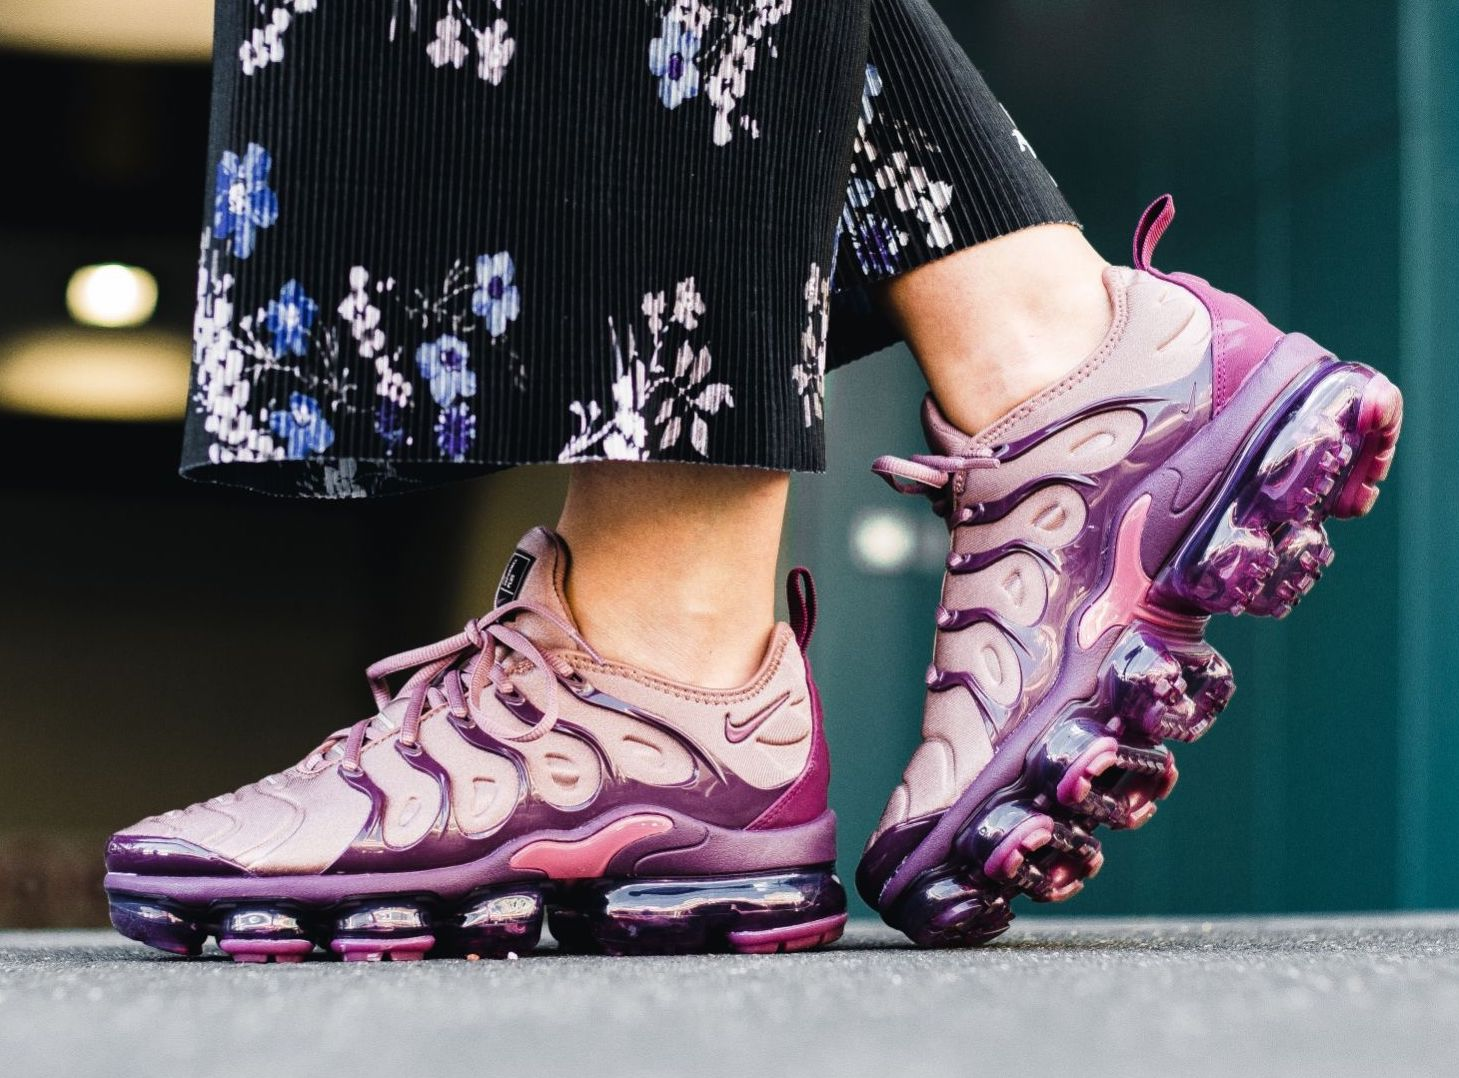 new arrival 31dcd 4ca41 Now Available: Women's Nike Air VaporMax Plus